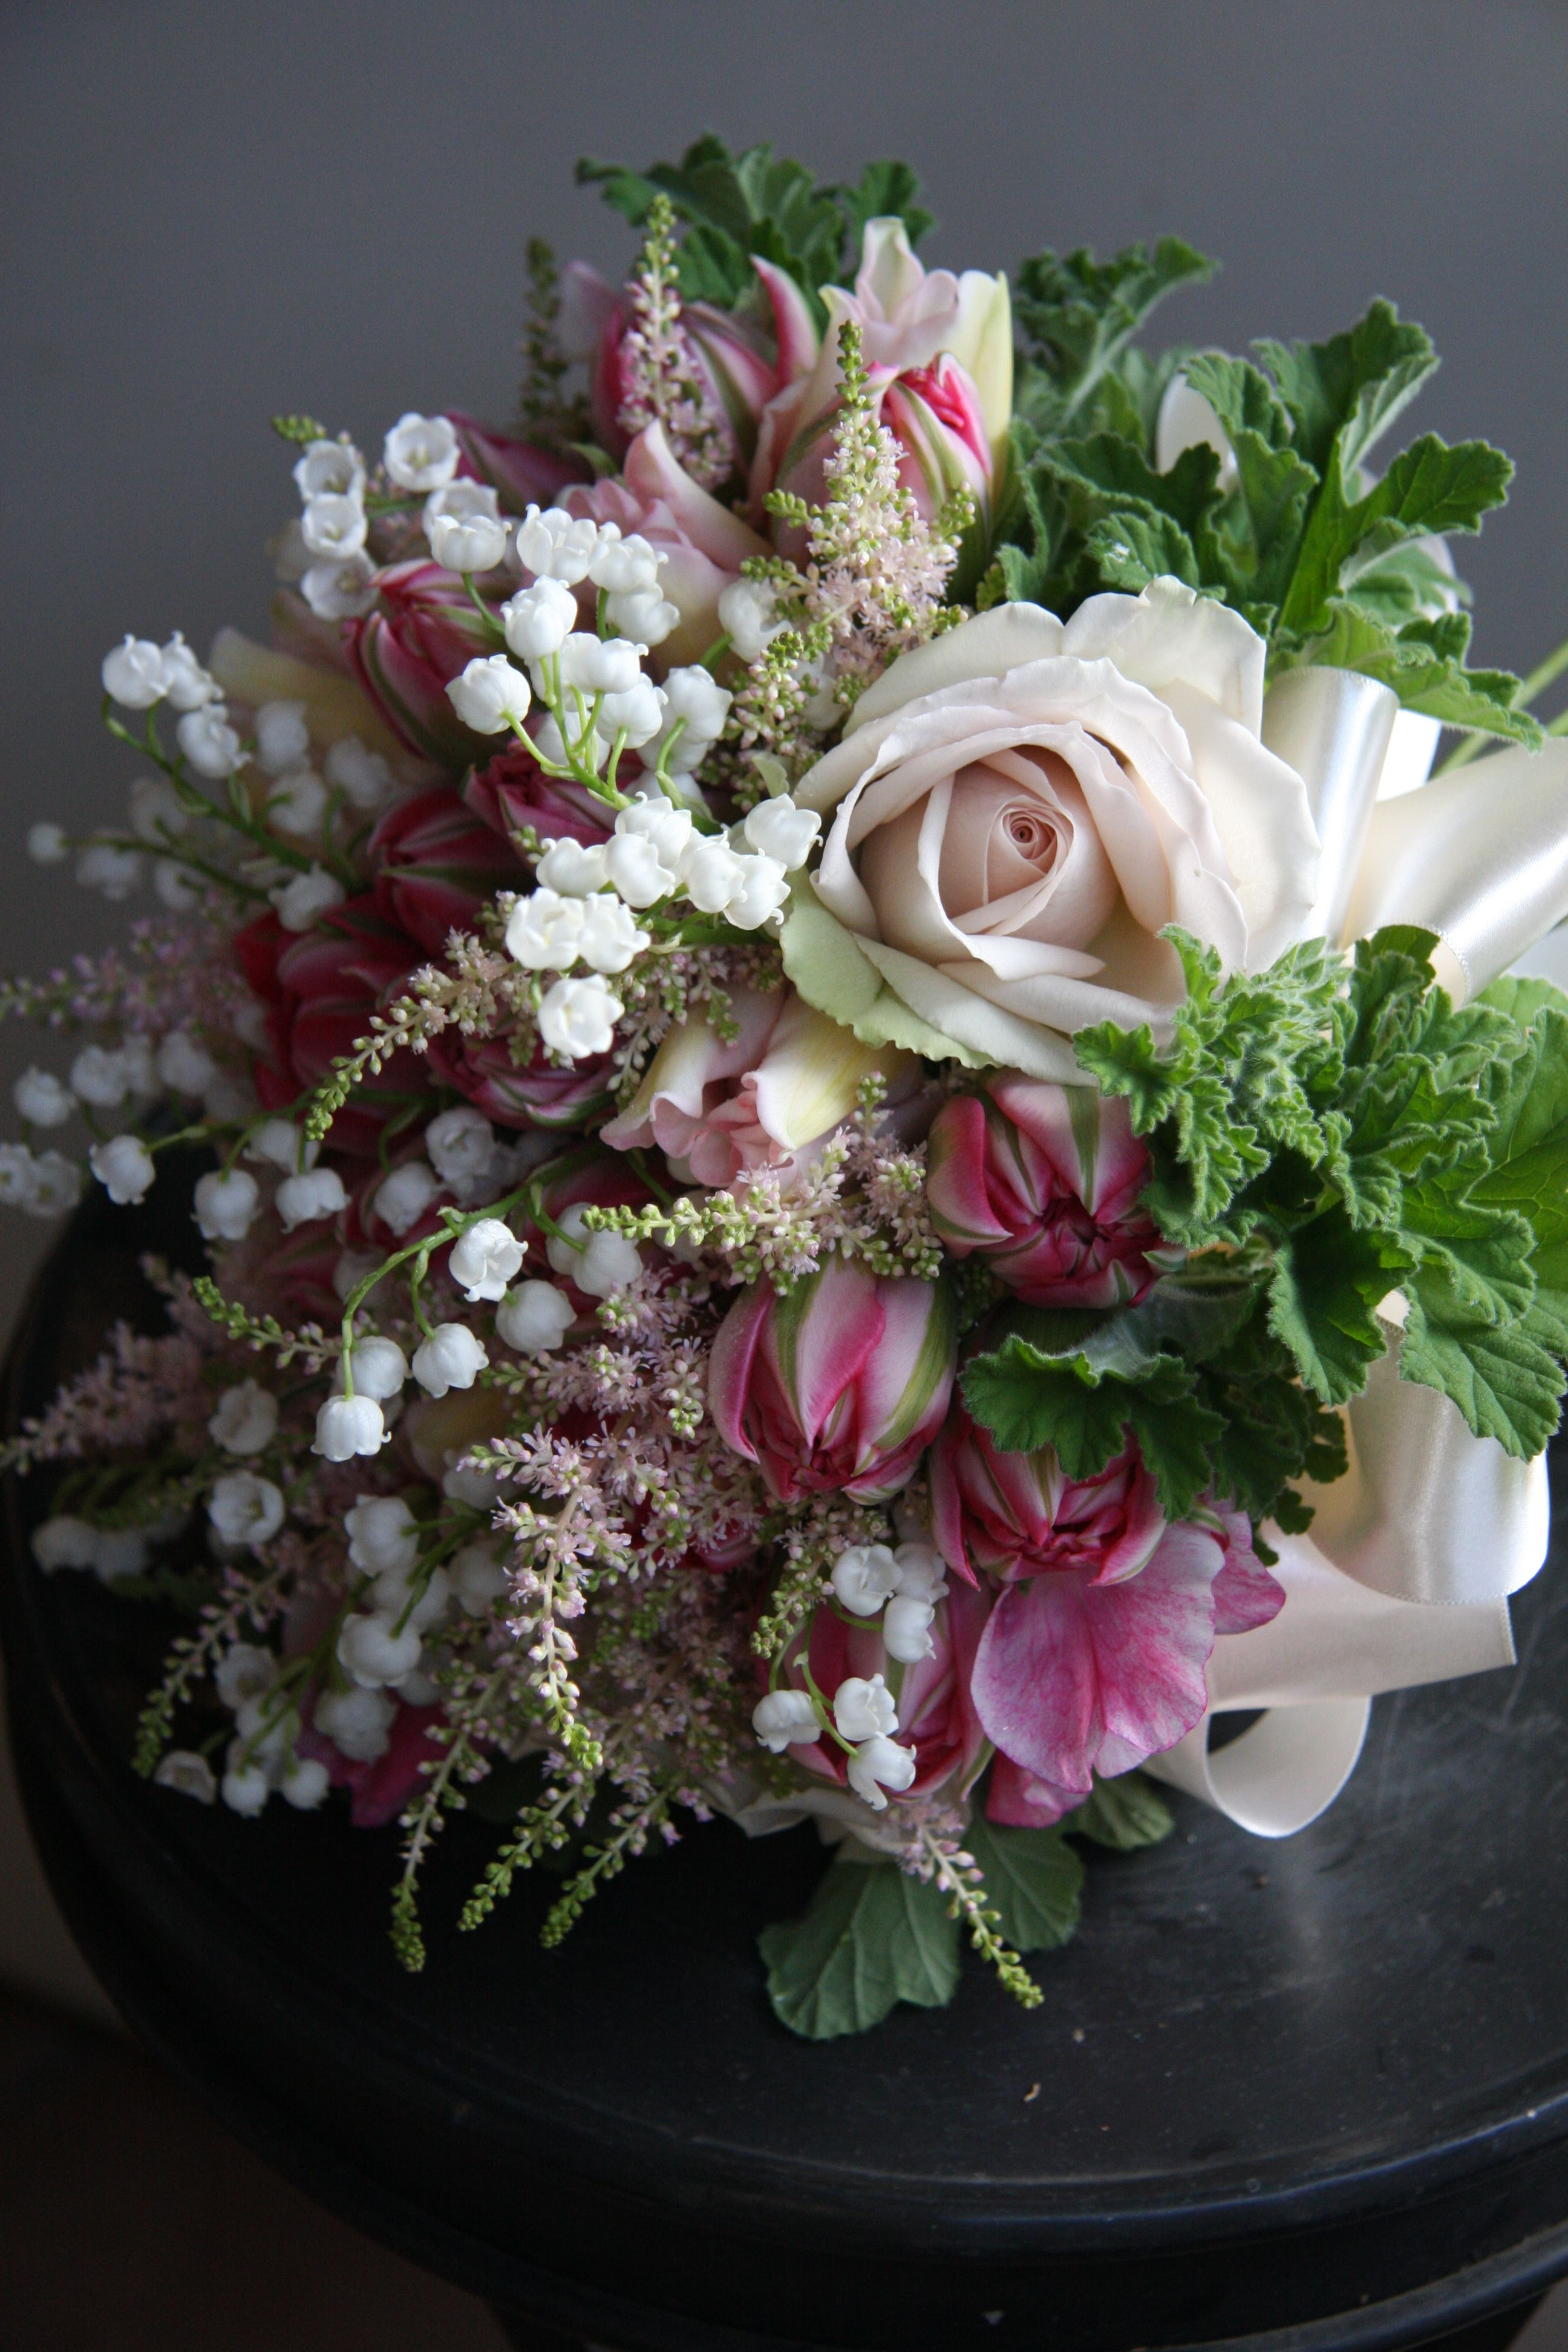 Tulip, lily of the valley, rose, astilbe and sweet peas